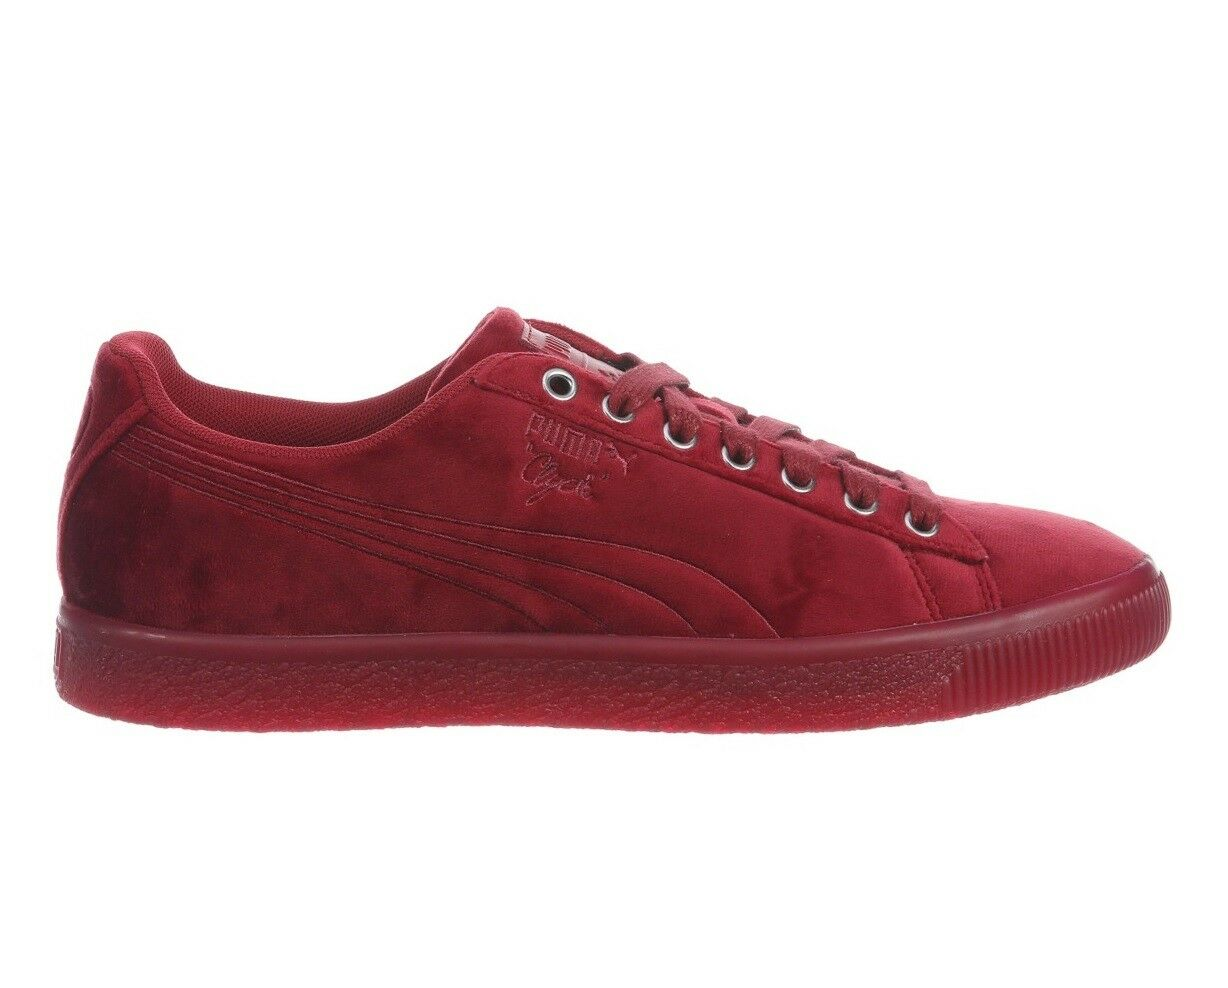 Puma Clyde Velour Ice Mens 366549-04 Tibetan Red Velvet Athletic Shoes Size 13